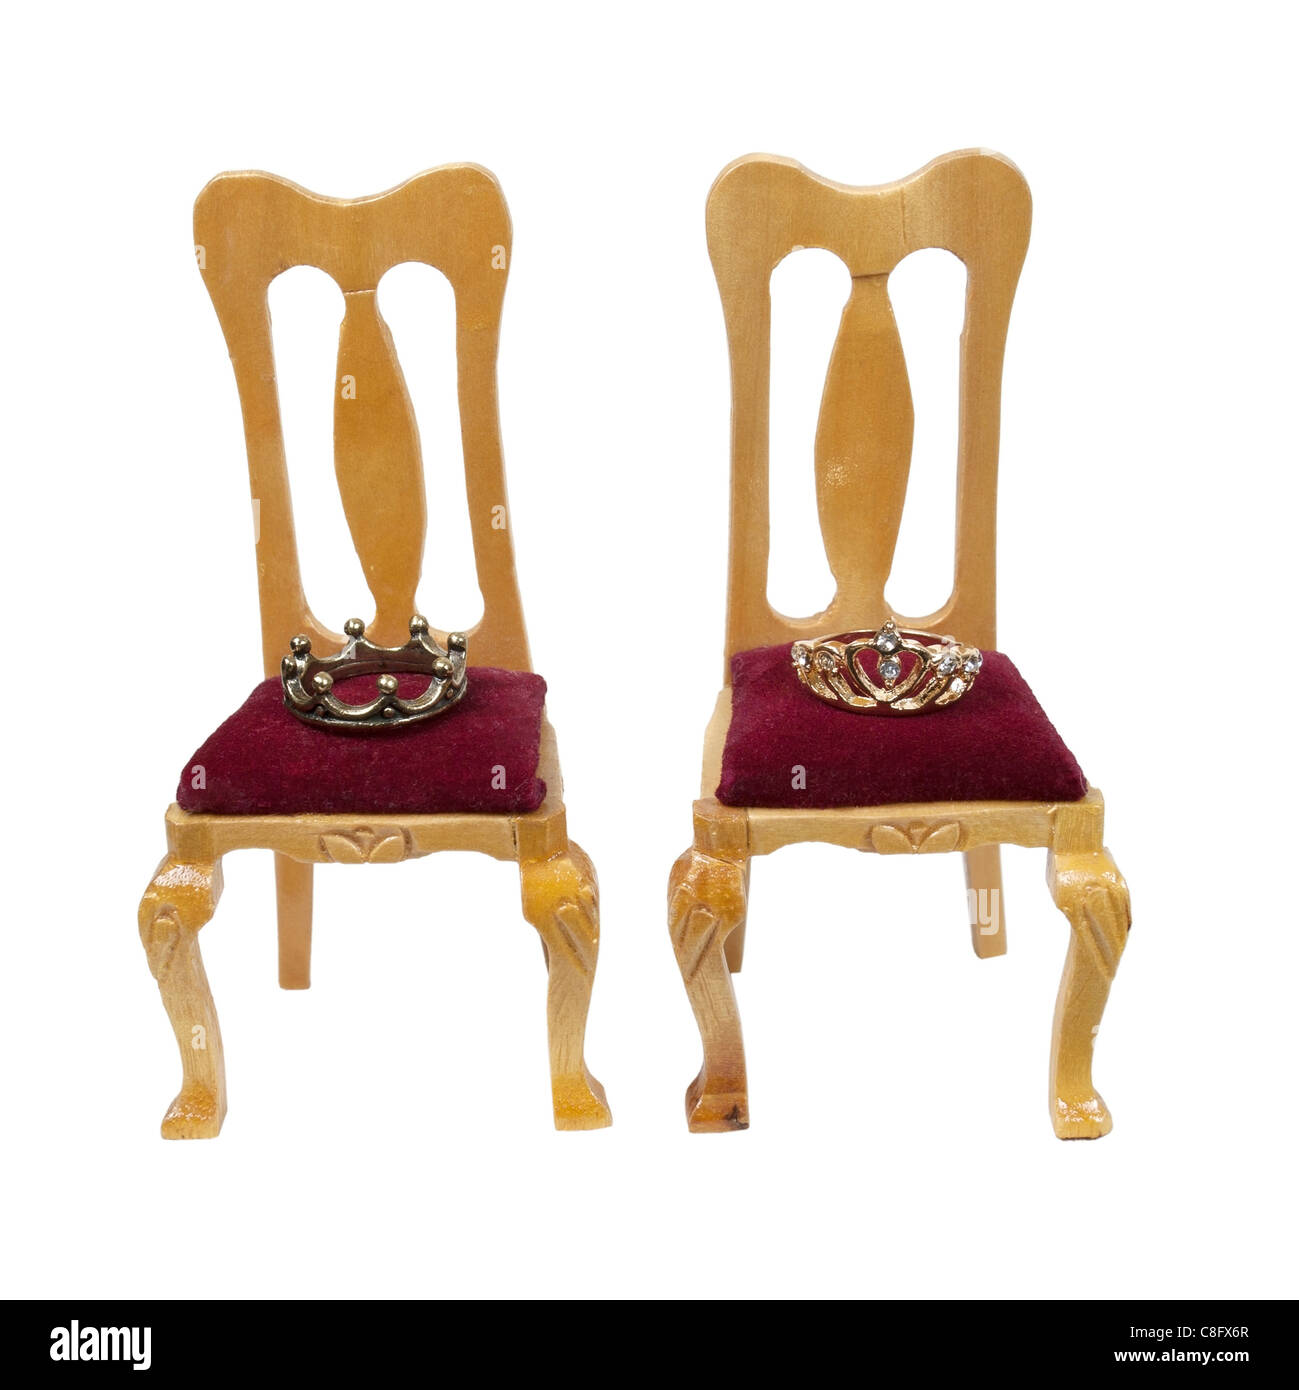 Thrones of the king and queen with velvet seats and royal crowns - path included - Stock Image